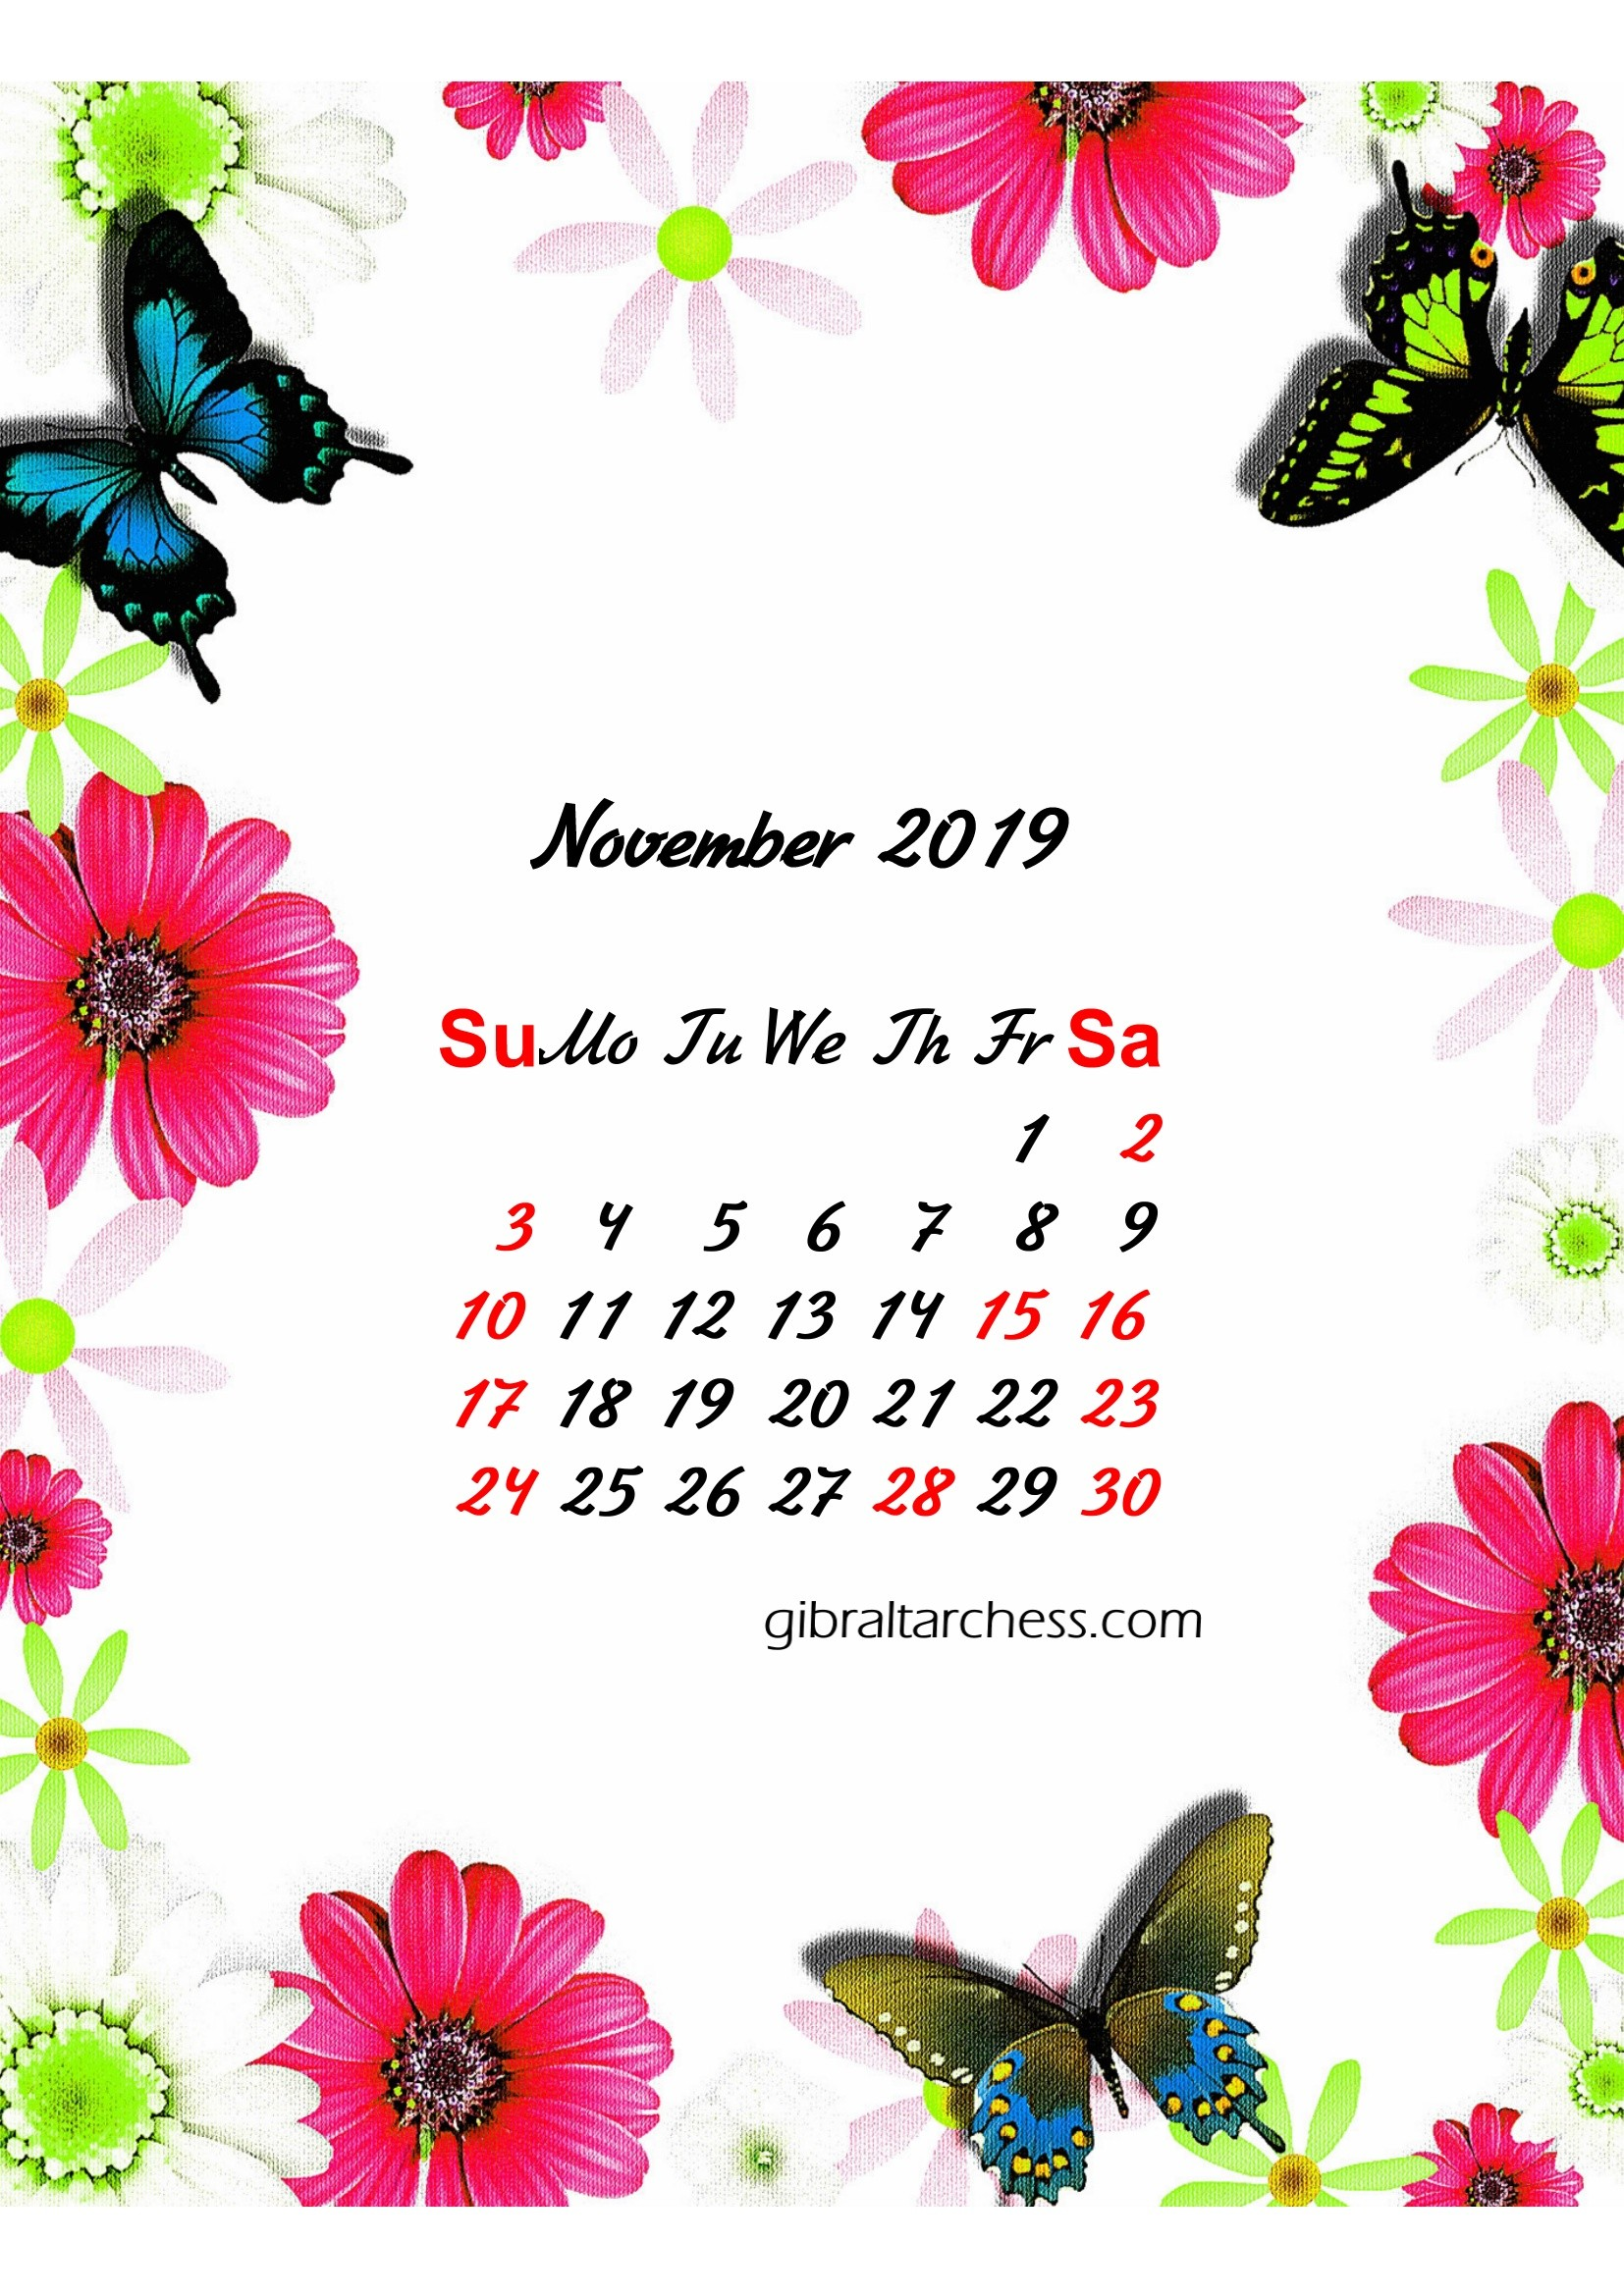 calendar template 2019 august  2019 Calendar Floral Monthly Border Printable Download For ..